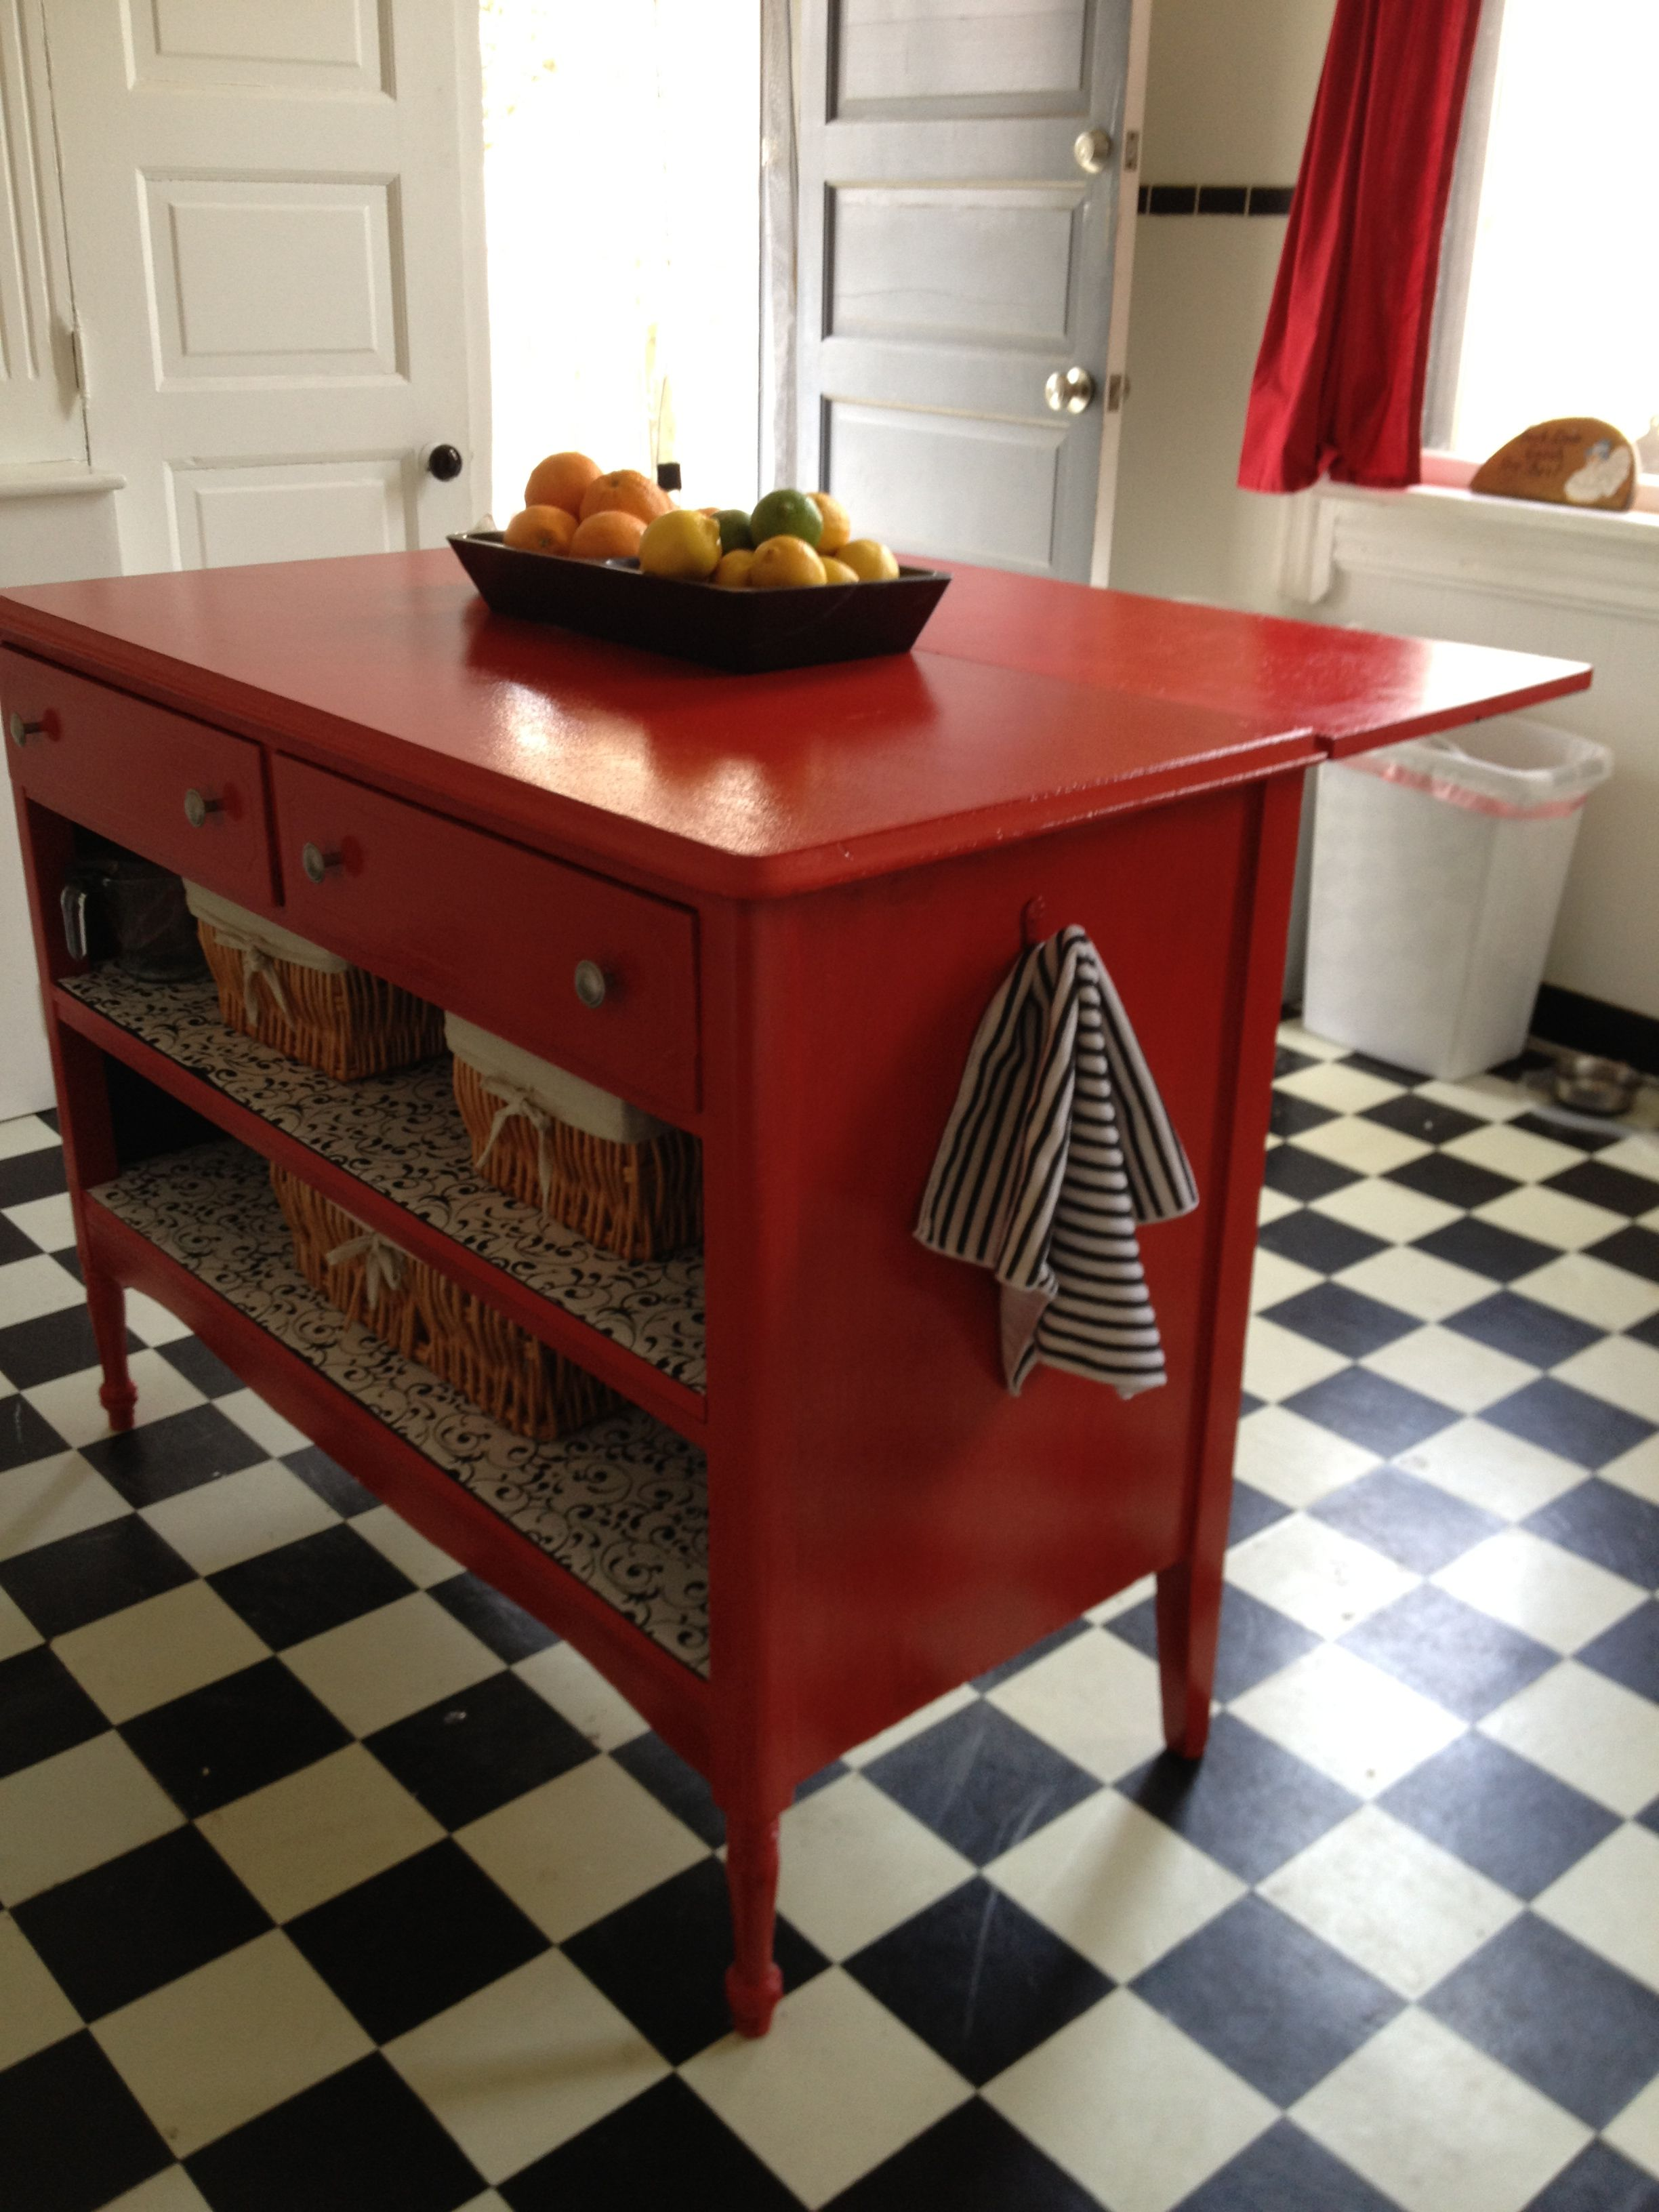 Kitchen Cabinets Made Into Island Turned An Old Dresser Into A Kitchen Island Added A Leaf